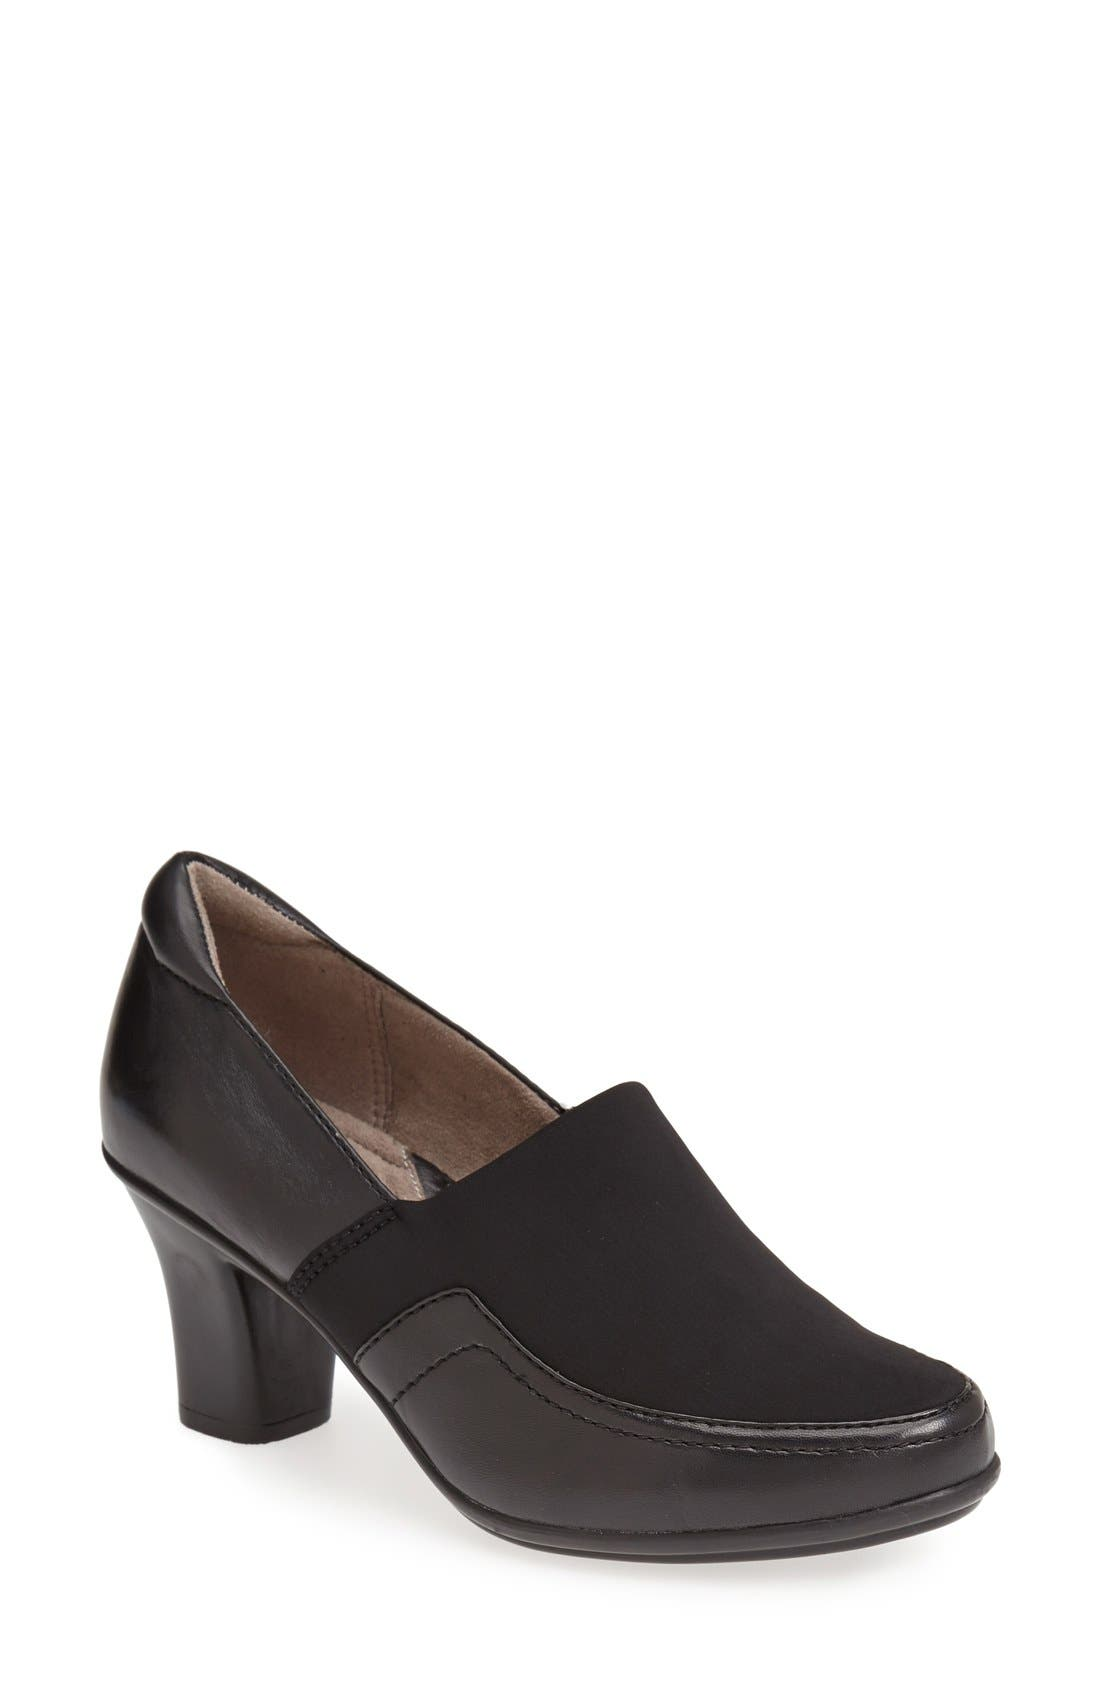 Main Image - Naturalizer 'Lotus' Tailored Pump (Women)